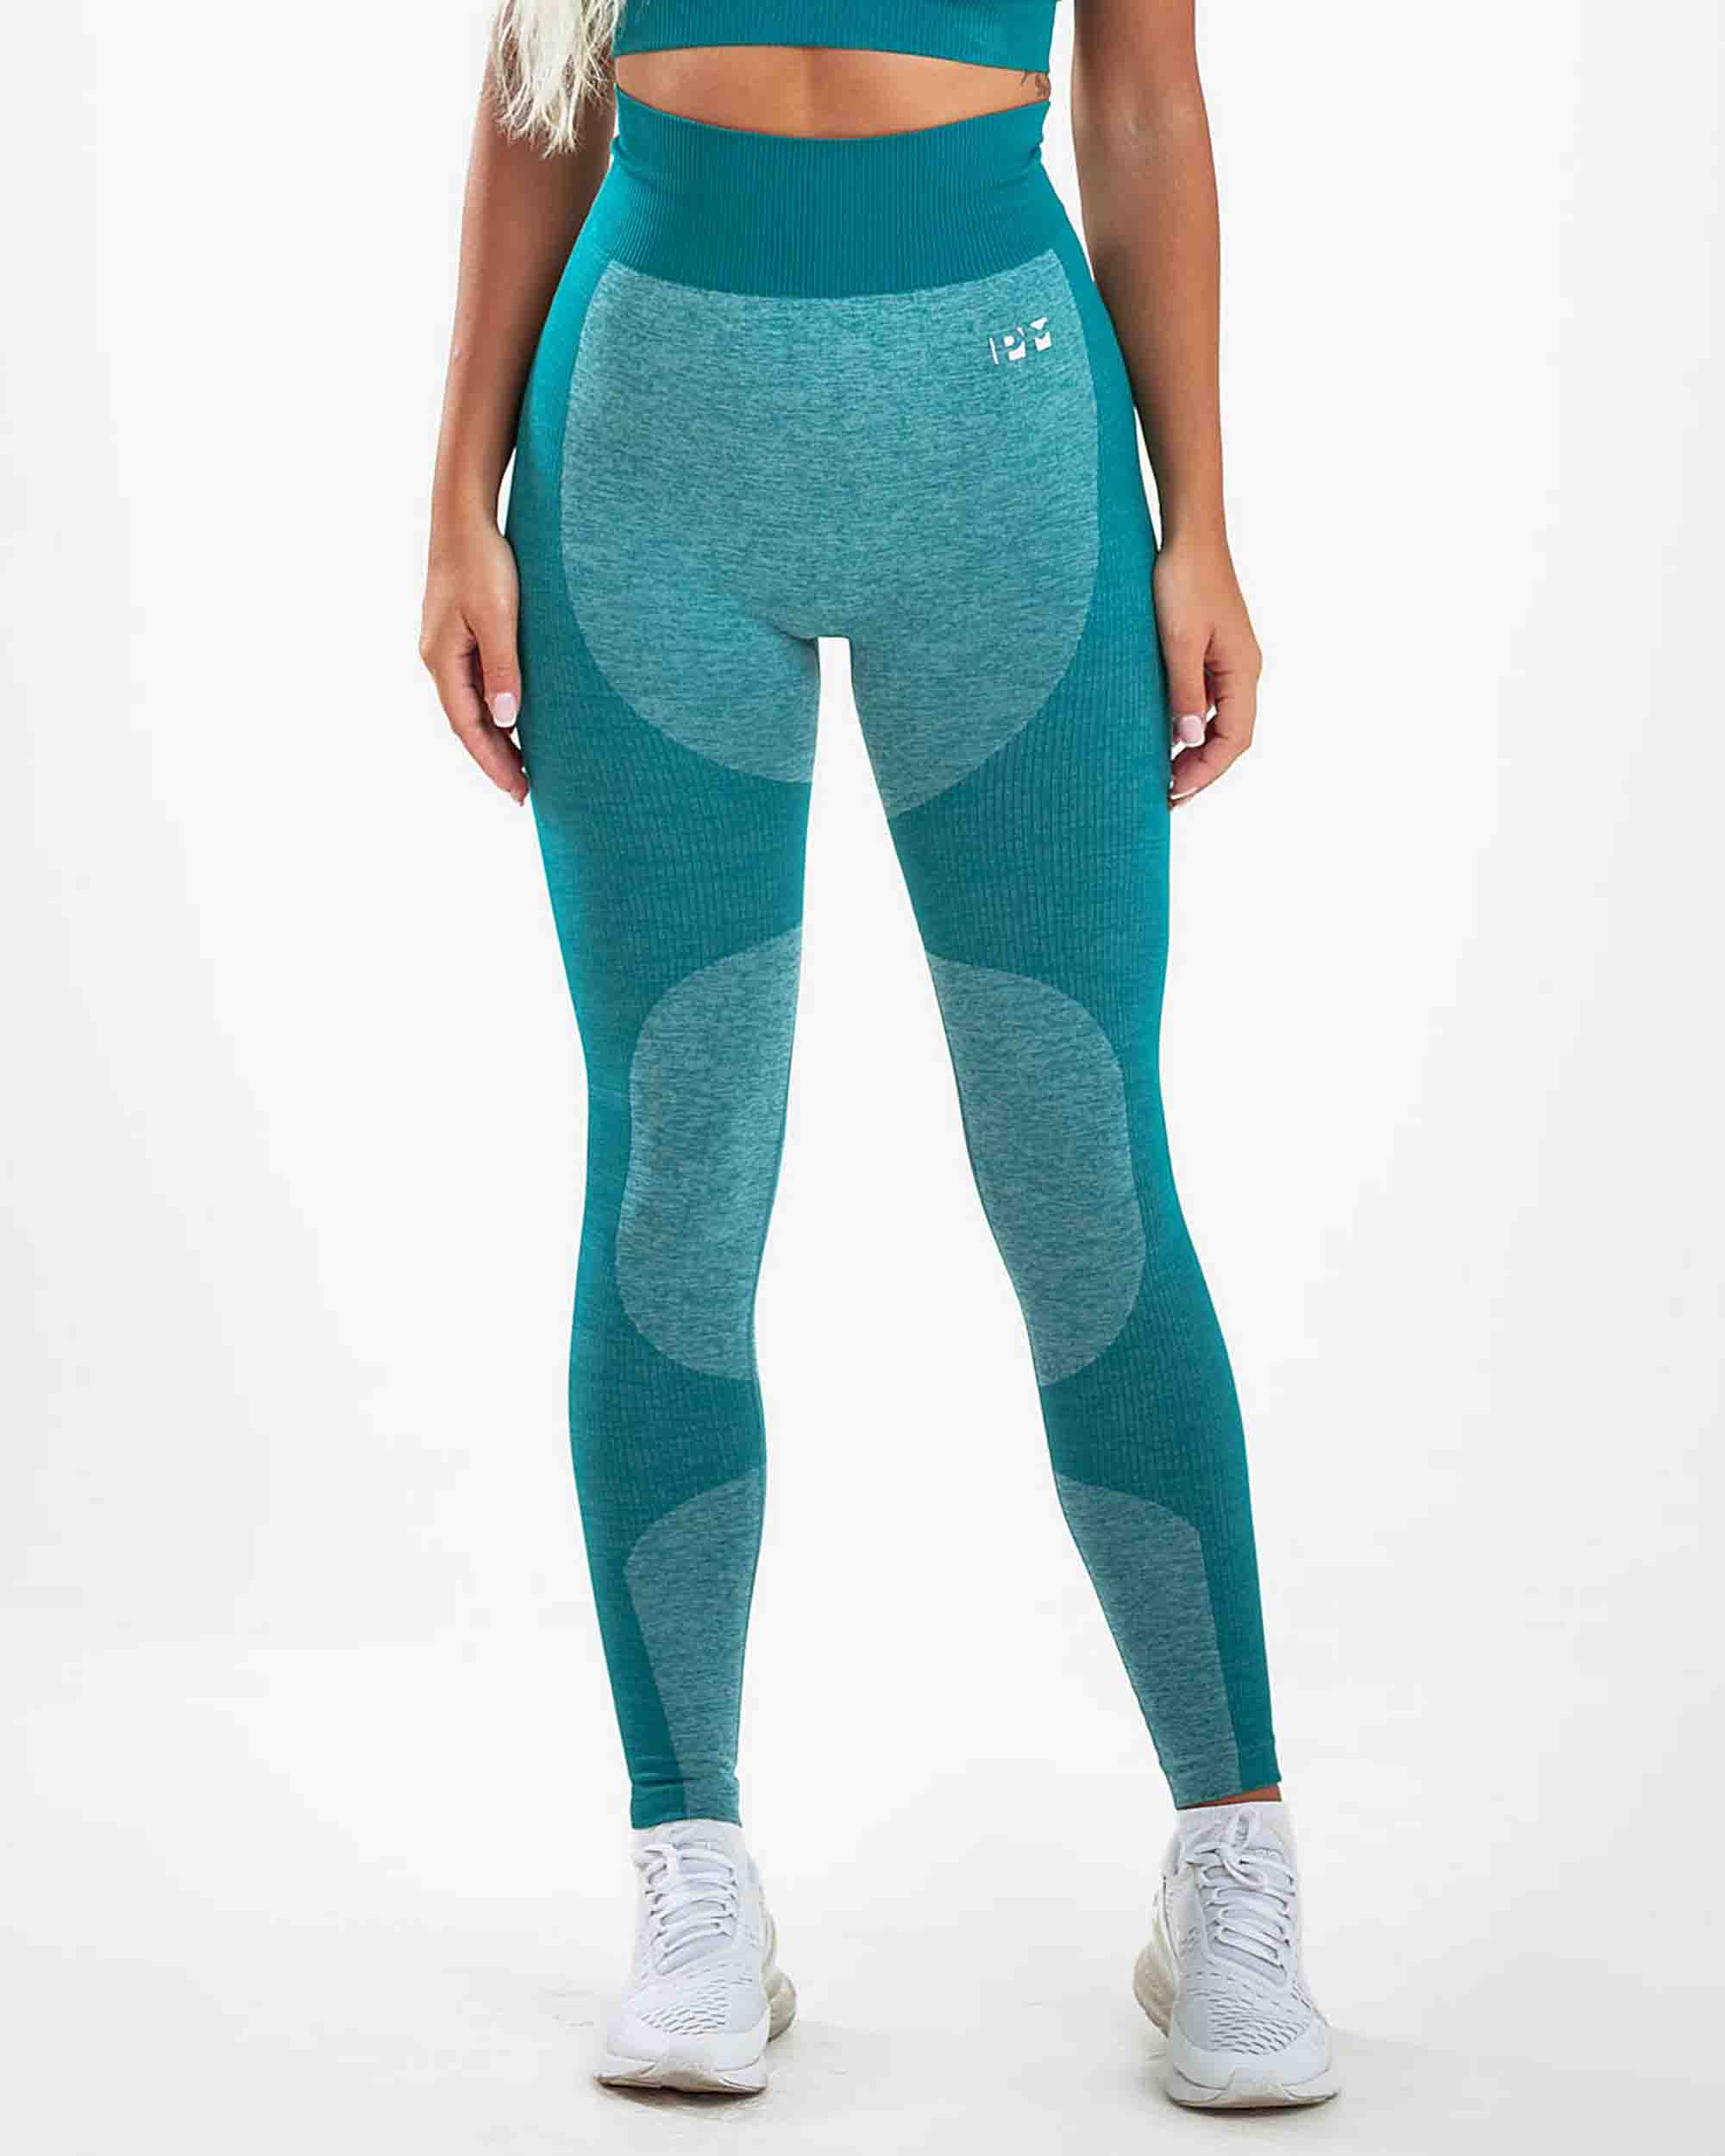 PM STRETCHY SEAMLESS LEGGINGS GREEN COLOR